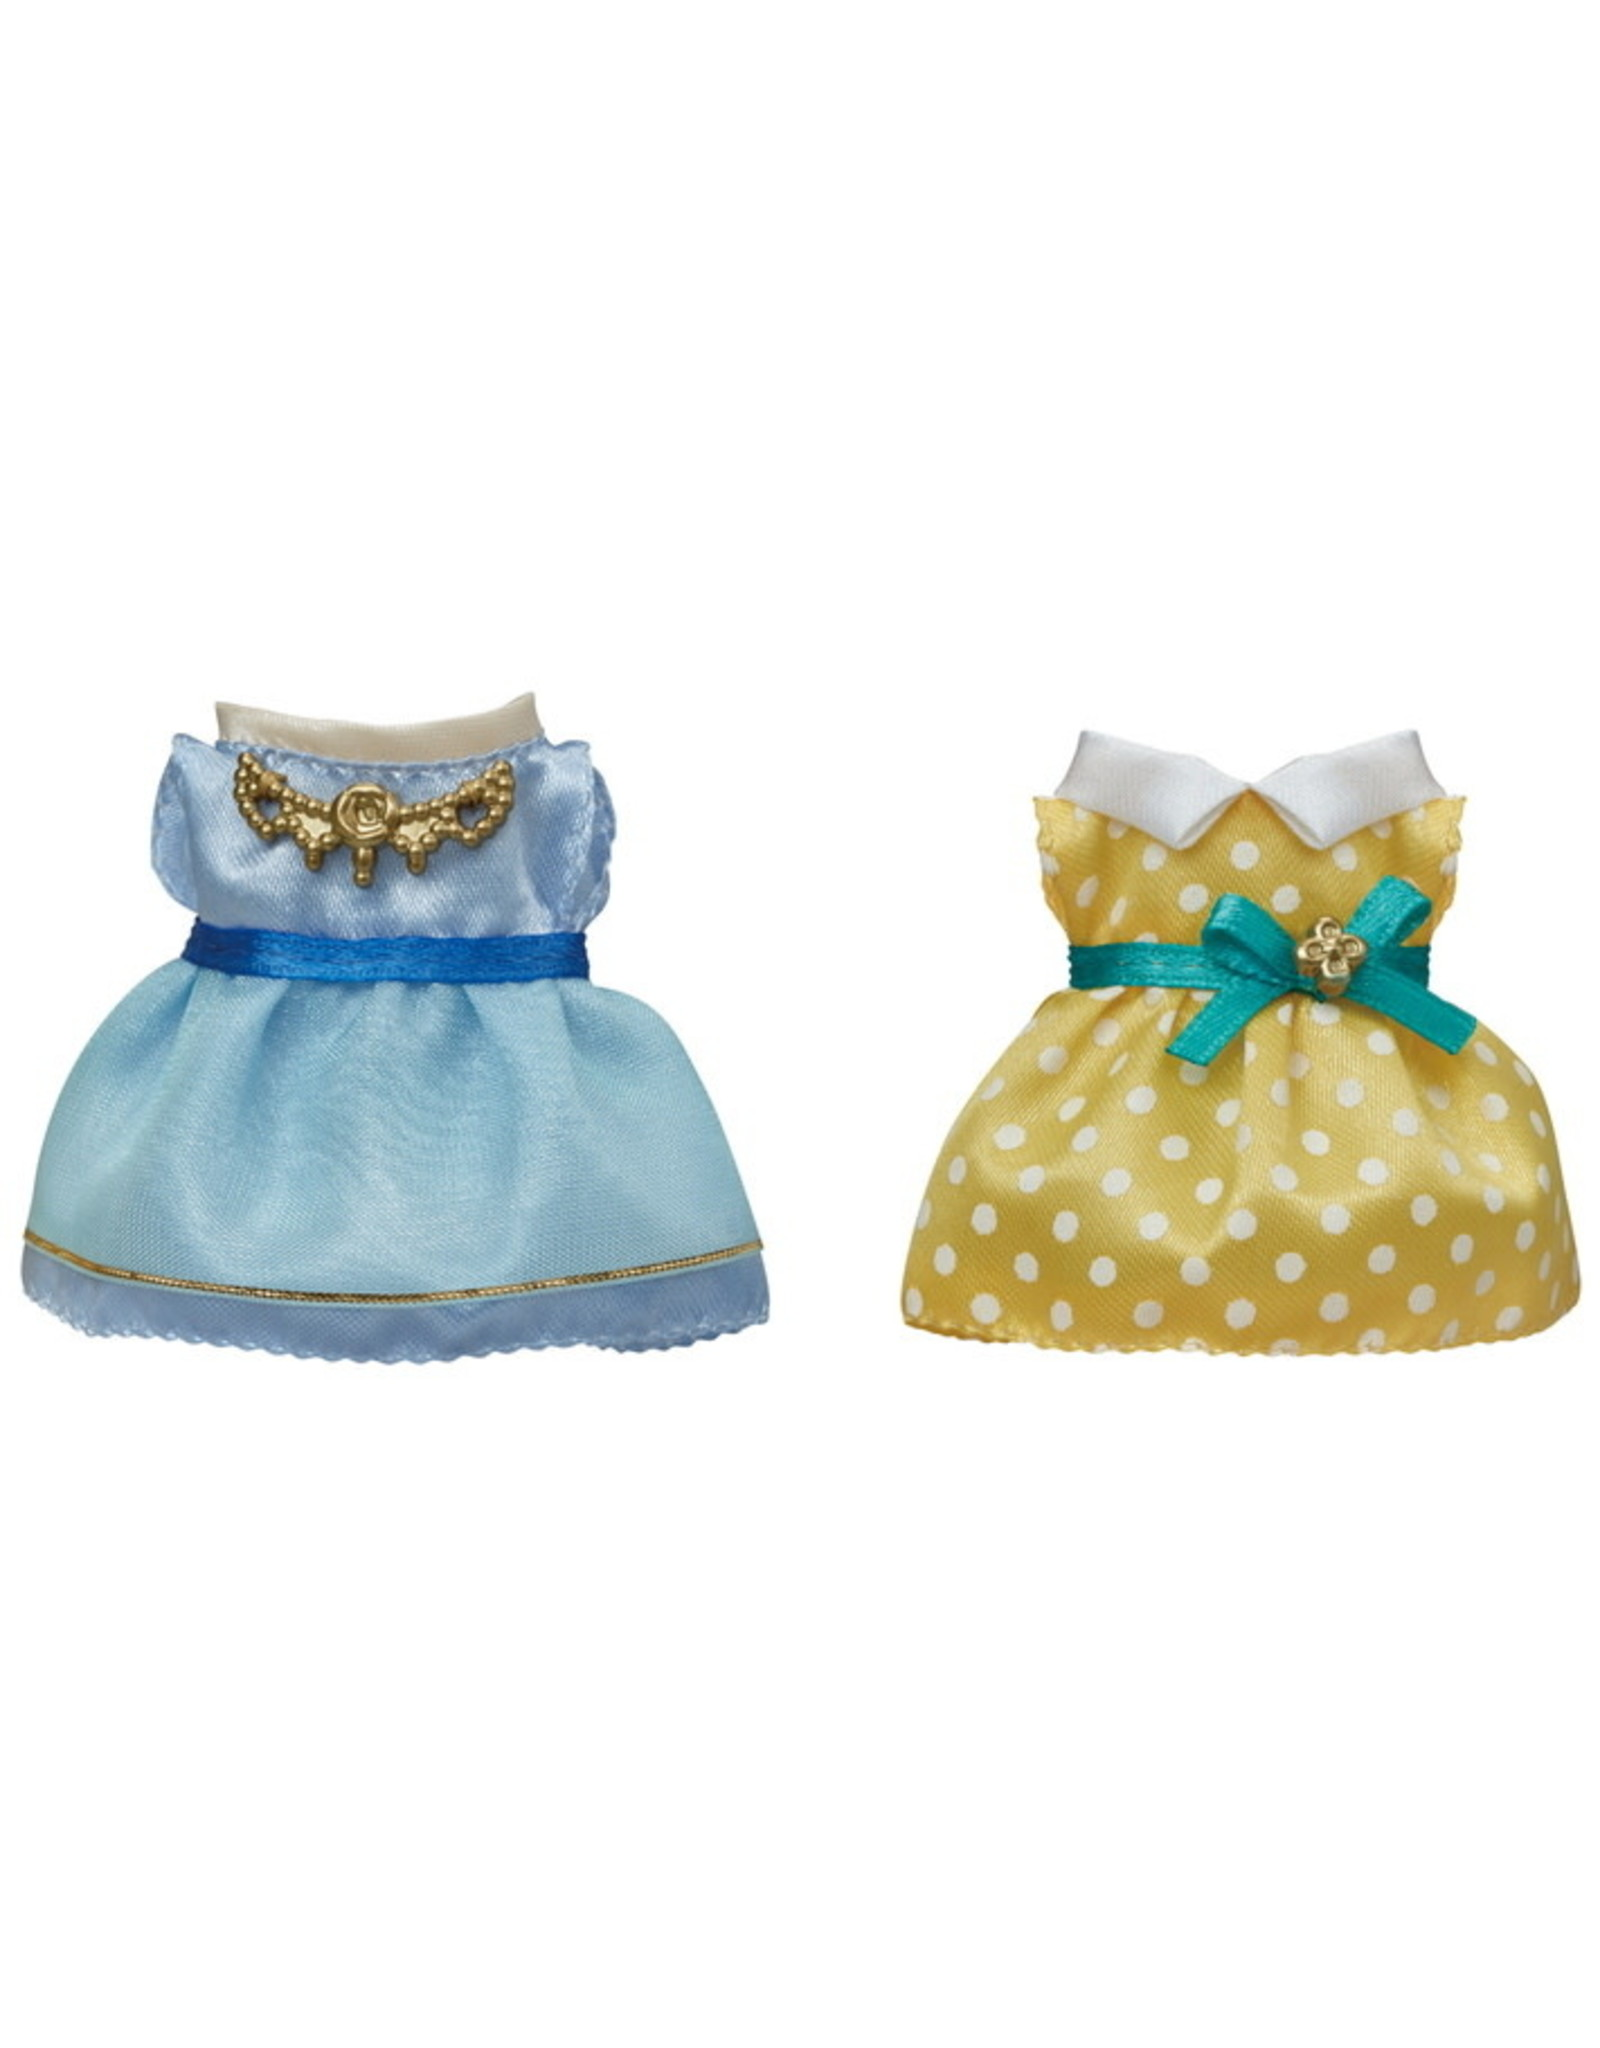 Calico Critters Dress Up Blue and Yellow Calico Critters